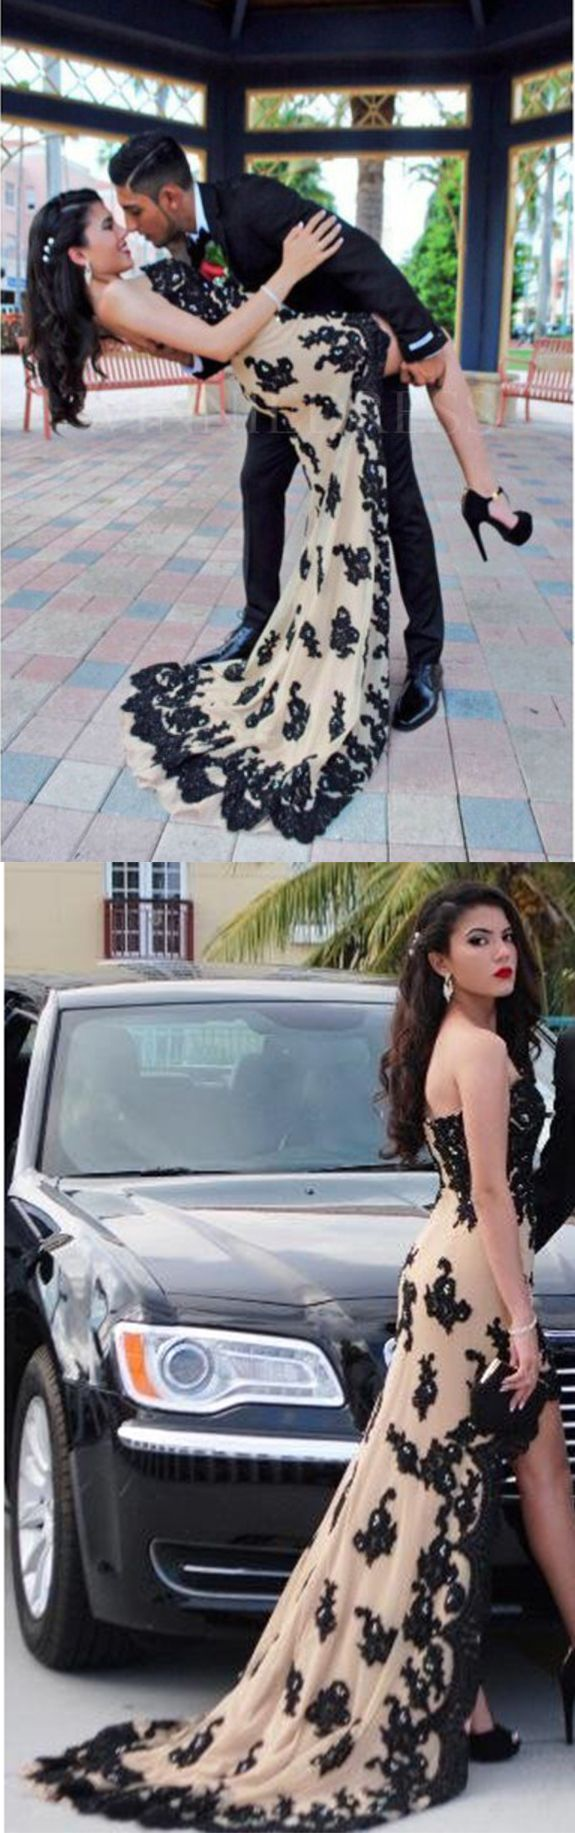 Hi-lo Prom Dresses,Black Lace Prom Dress,Applique Prom Dresses,Nude Prom Gown,Sexy Evening Gowns,High Low Prom Dress,Black Prom Dress,Graduation Dress,Prom Dress for Teens #black #lace #stapless #highlow #sexy #prom #formal #okdresses